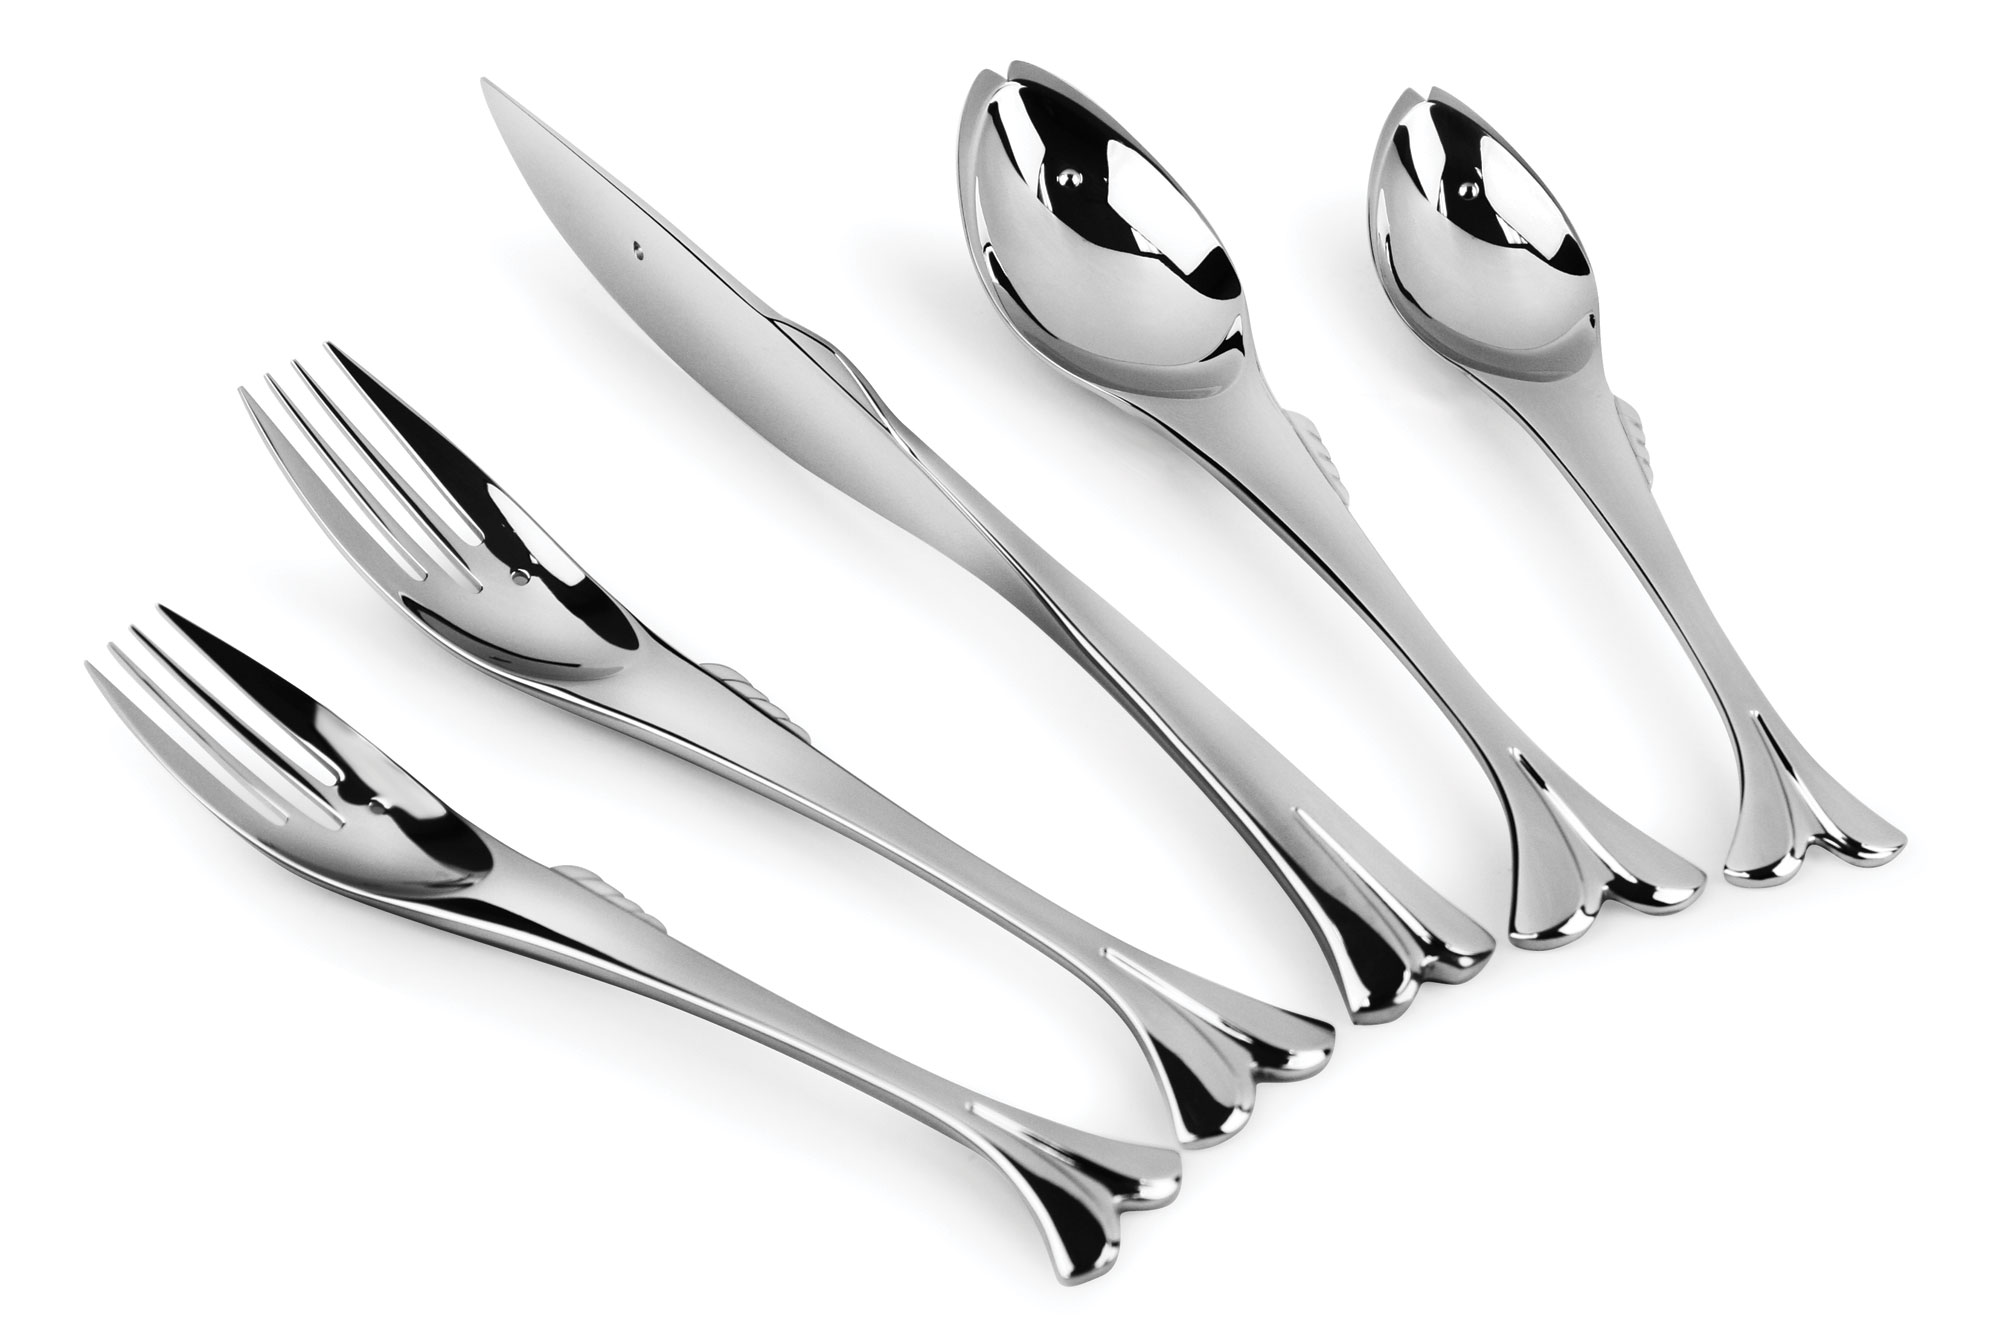 Yamazaki Gone Fishin Stainless Steel Flatware Set 20